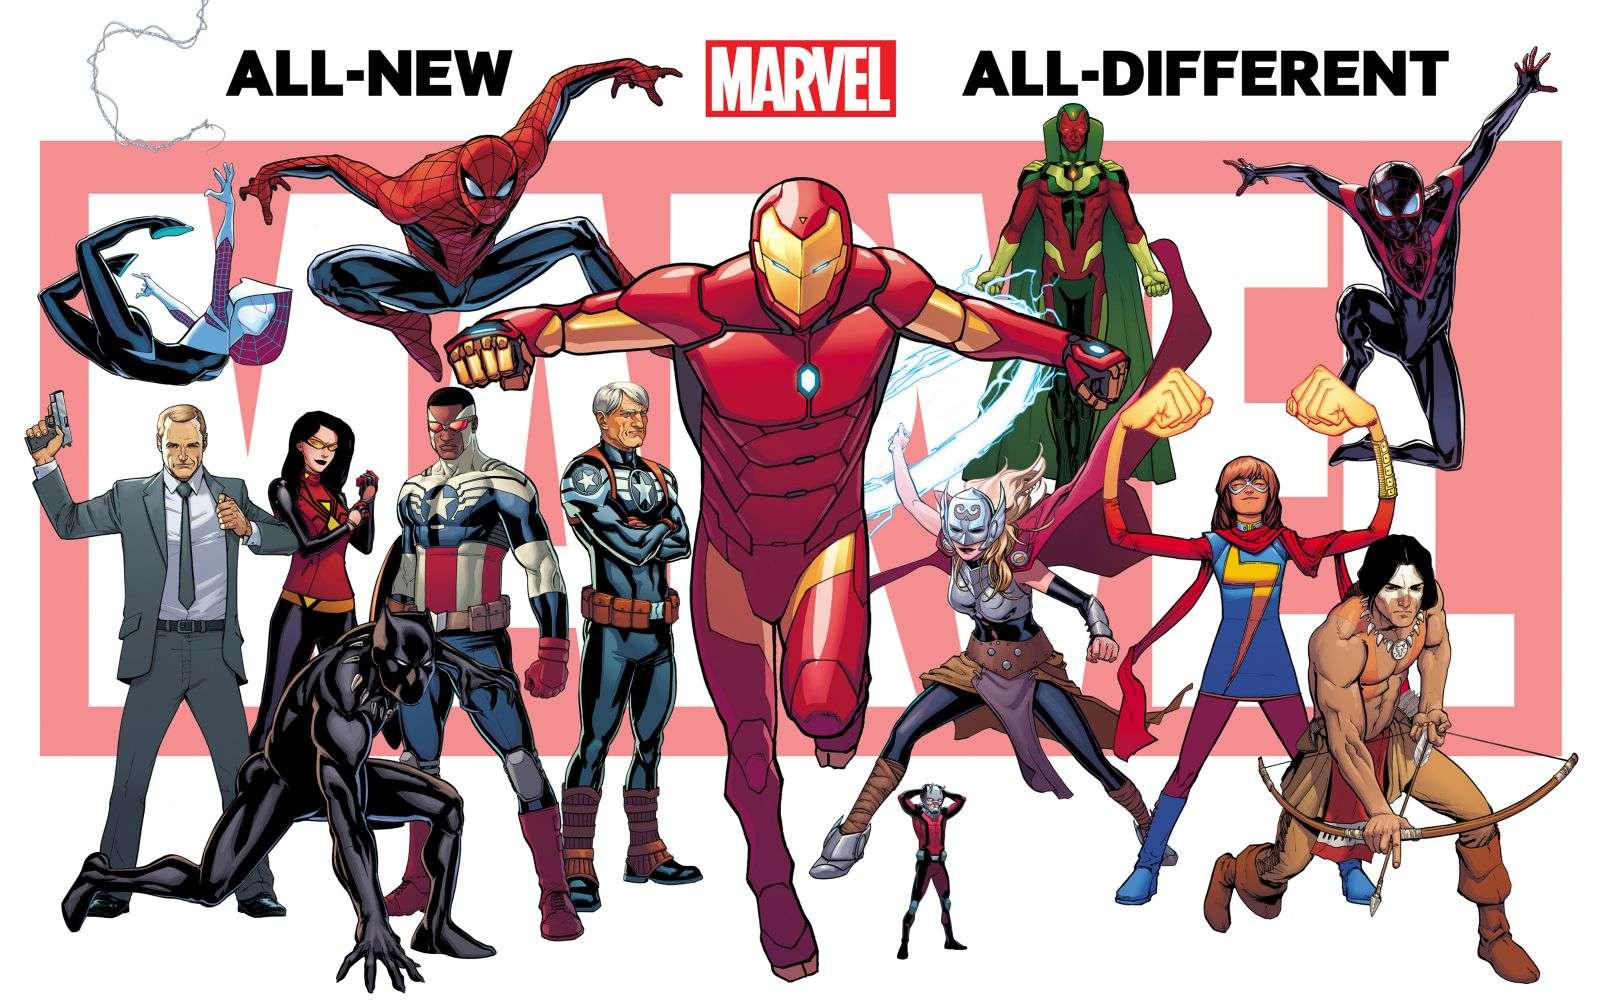 All New All Different Marvel Teaser